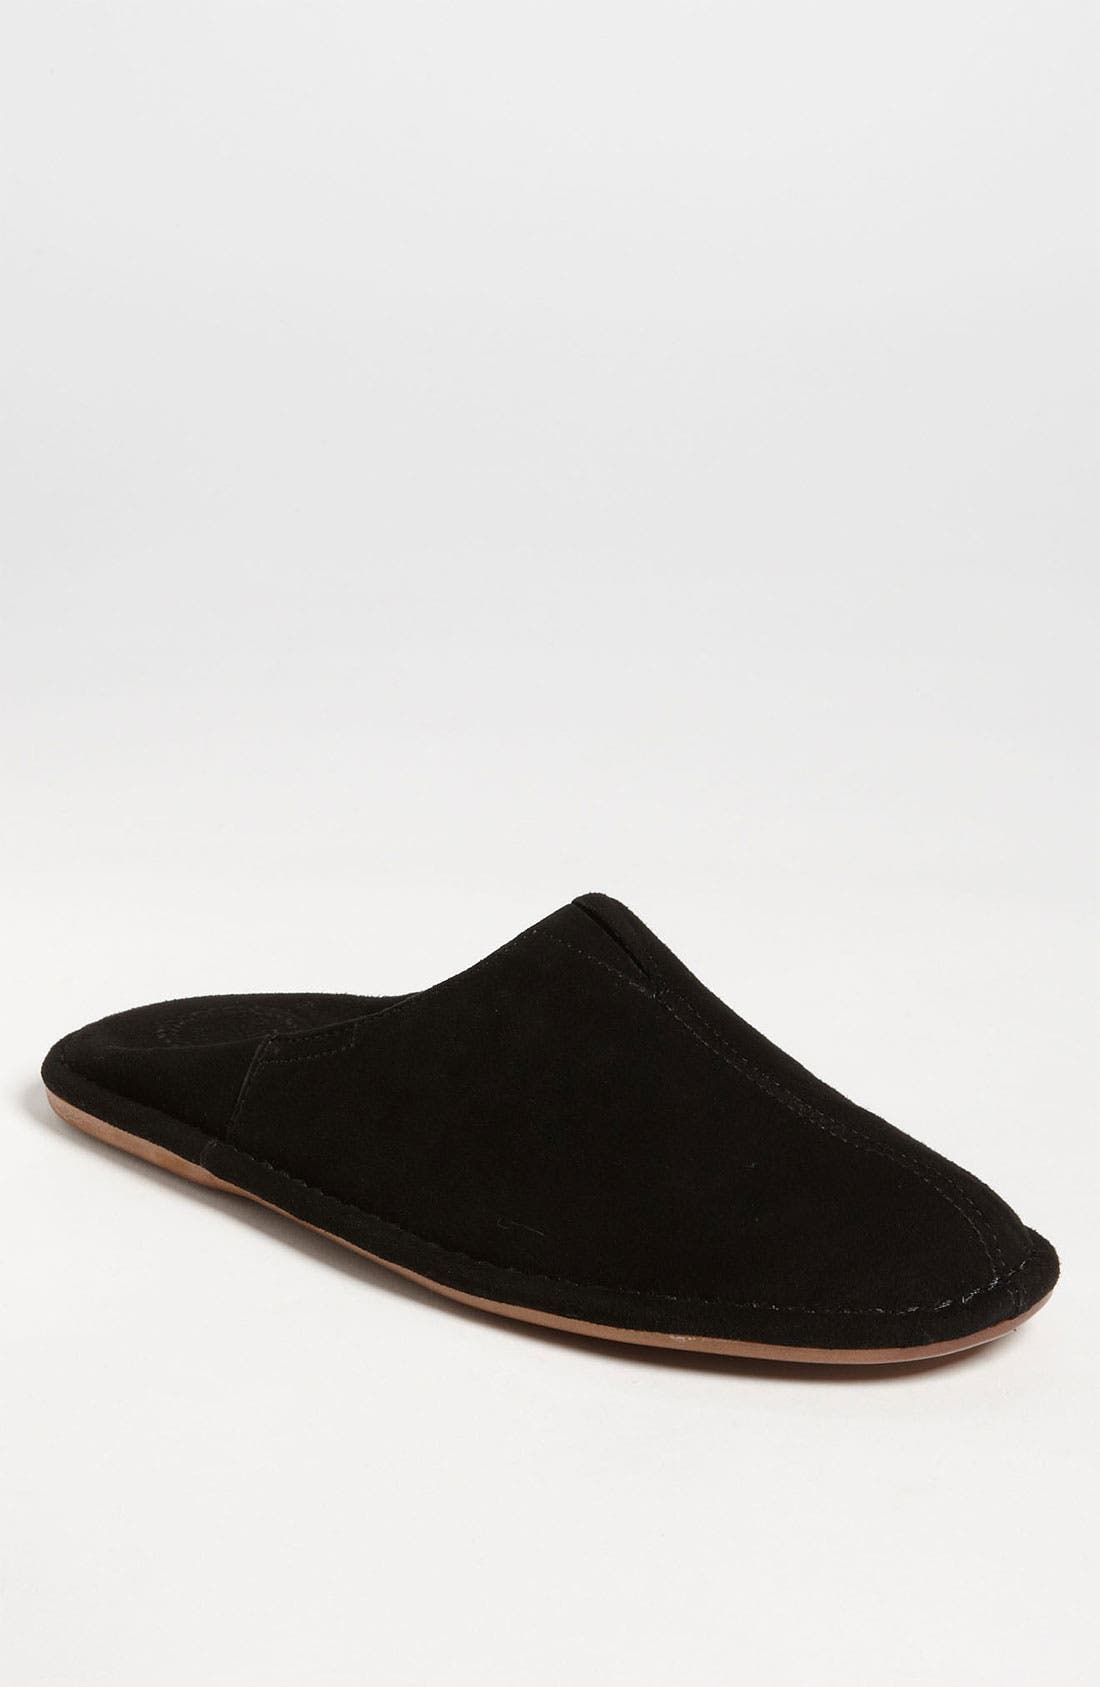 Alternate Image 1 Selected - L.B. Evans 'Pierce' Slipper